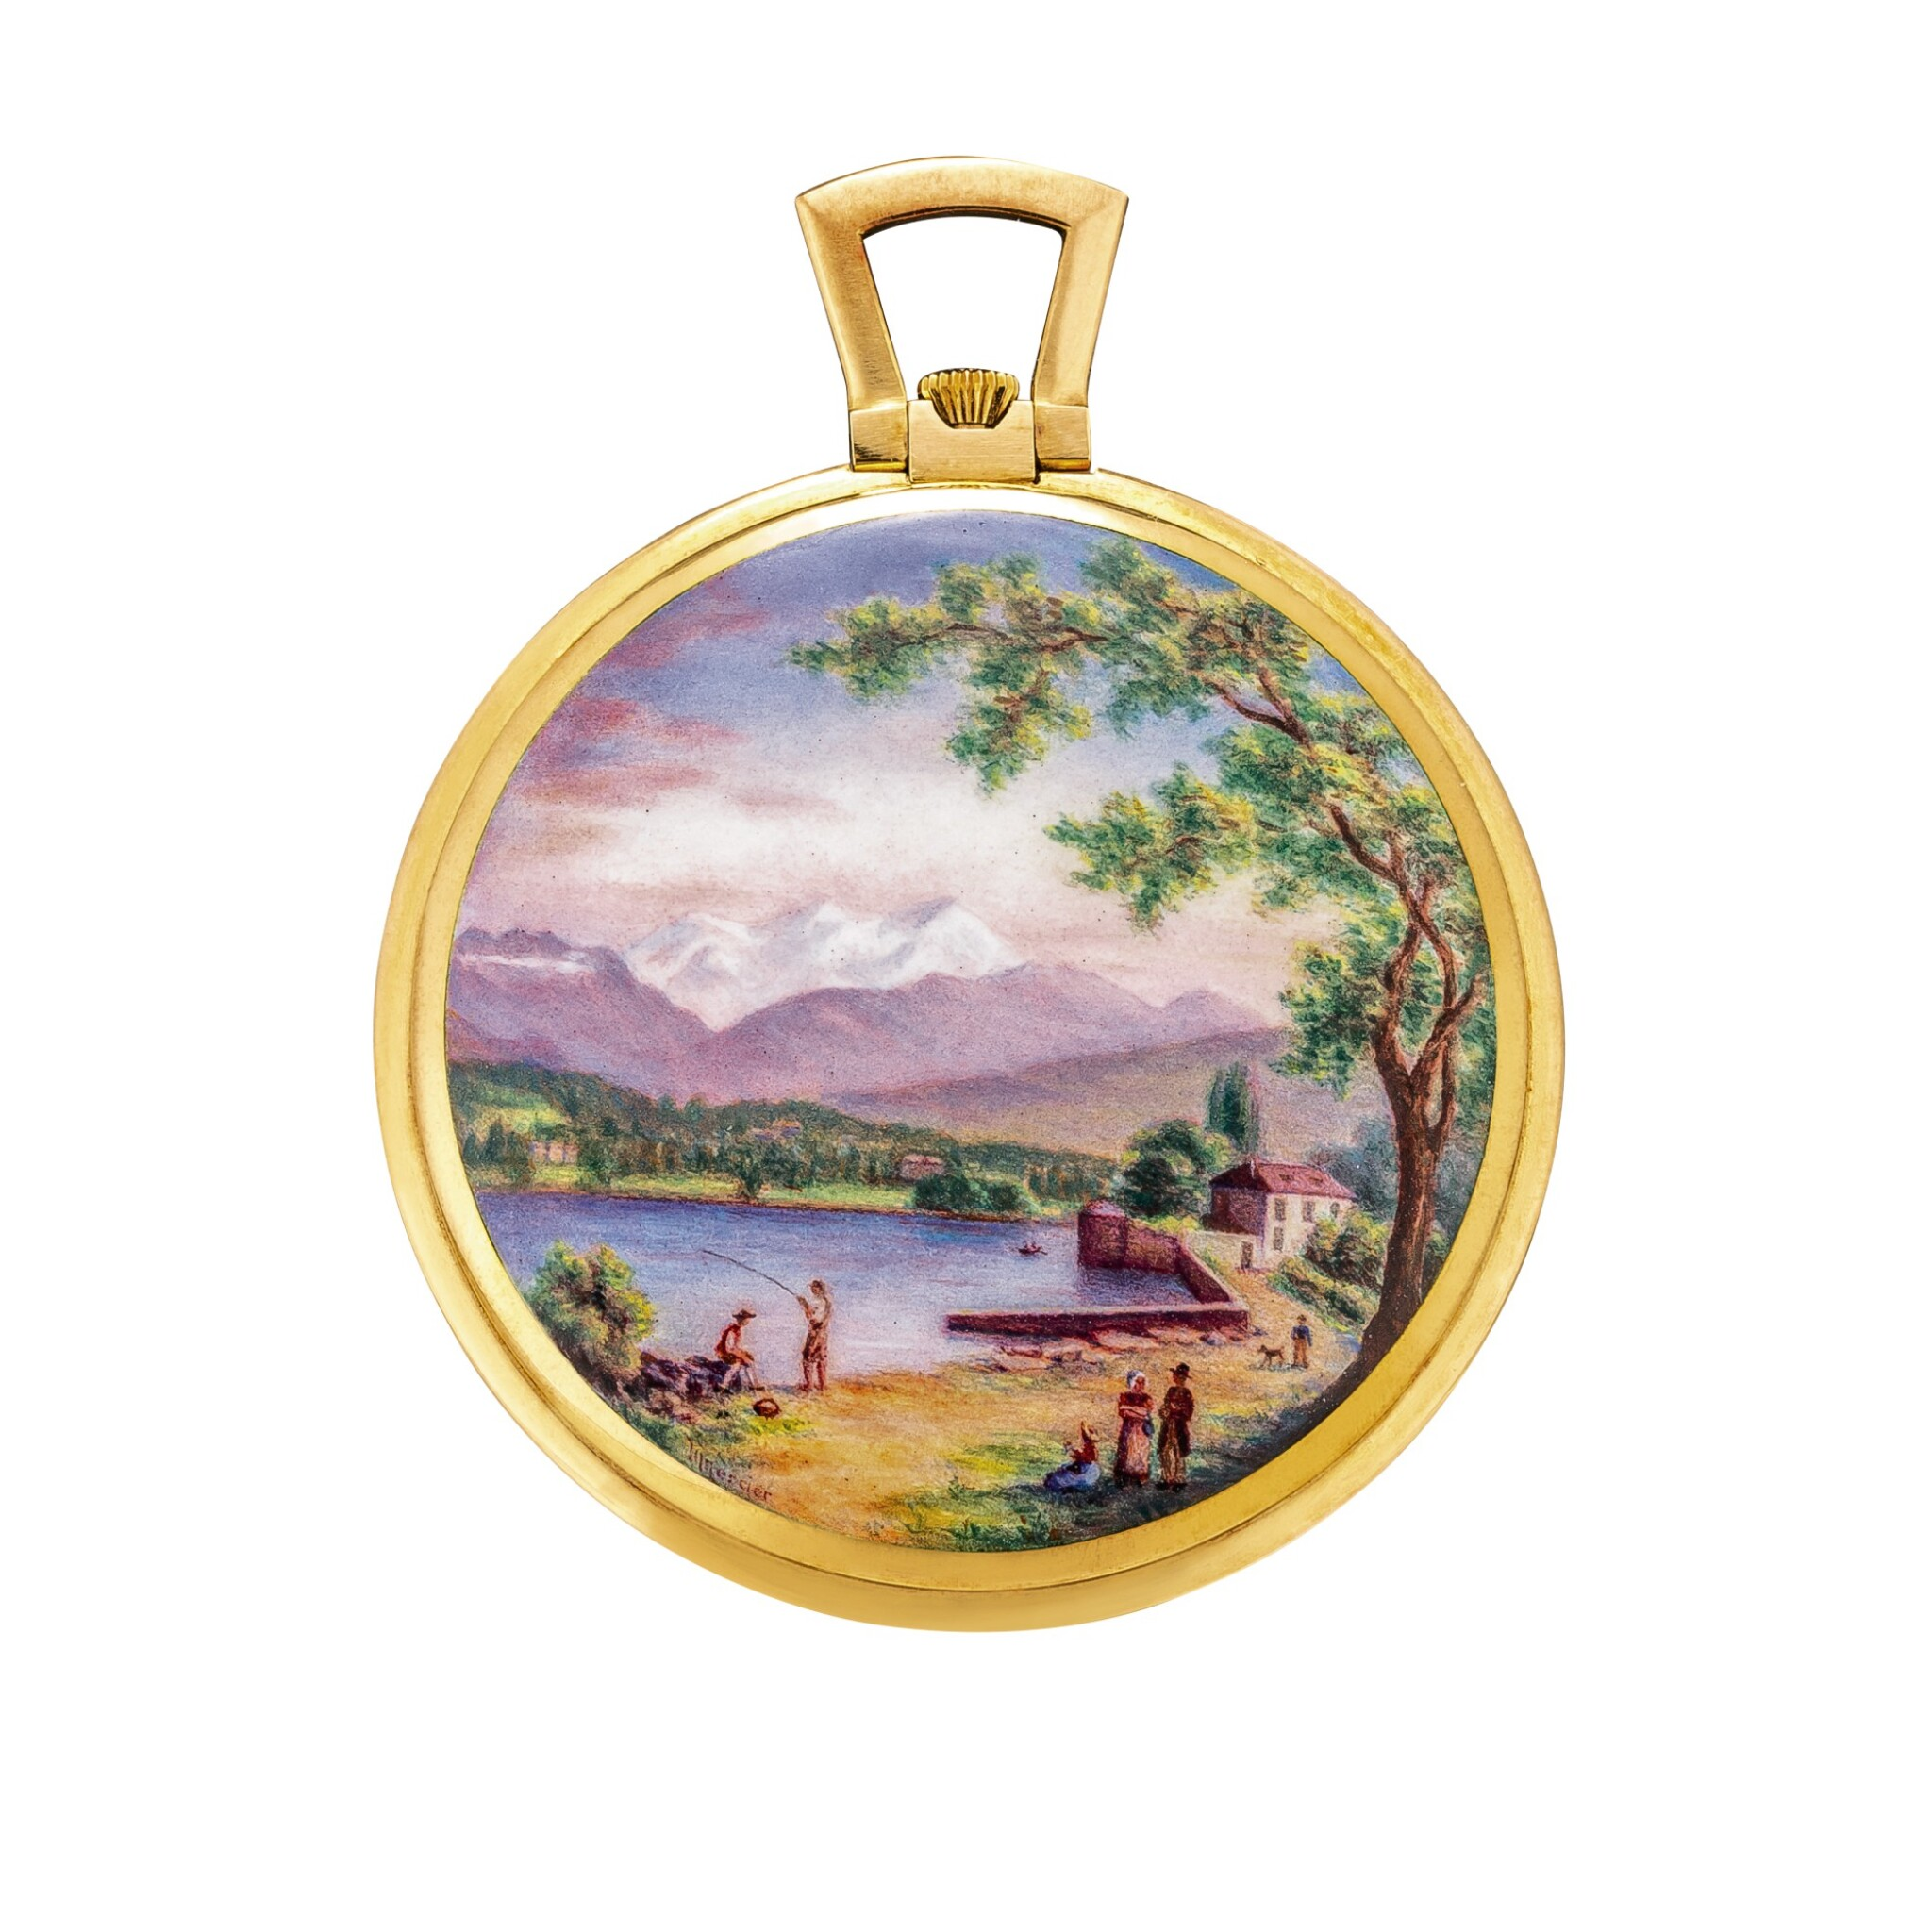 View full screen - View 1 of Lot 2185. Vacheron Constantin, A unique, highly important and extremely attractive yellow gold open face watch with enamel miniature, painted by Helen May Mercier, Made in 1948   江詩丹頓   獨一無二、非常重要及優雅黃金懷錶,配 Helen May Mercier 繪製的微繪琺瑯,1948 年製.